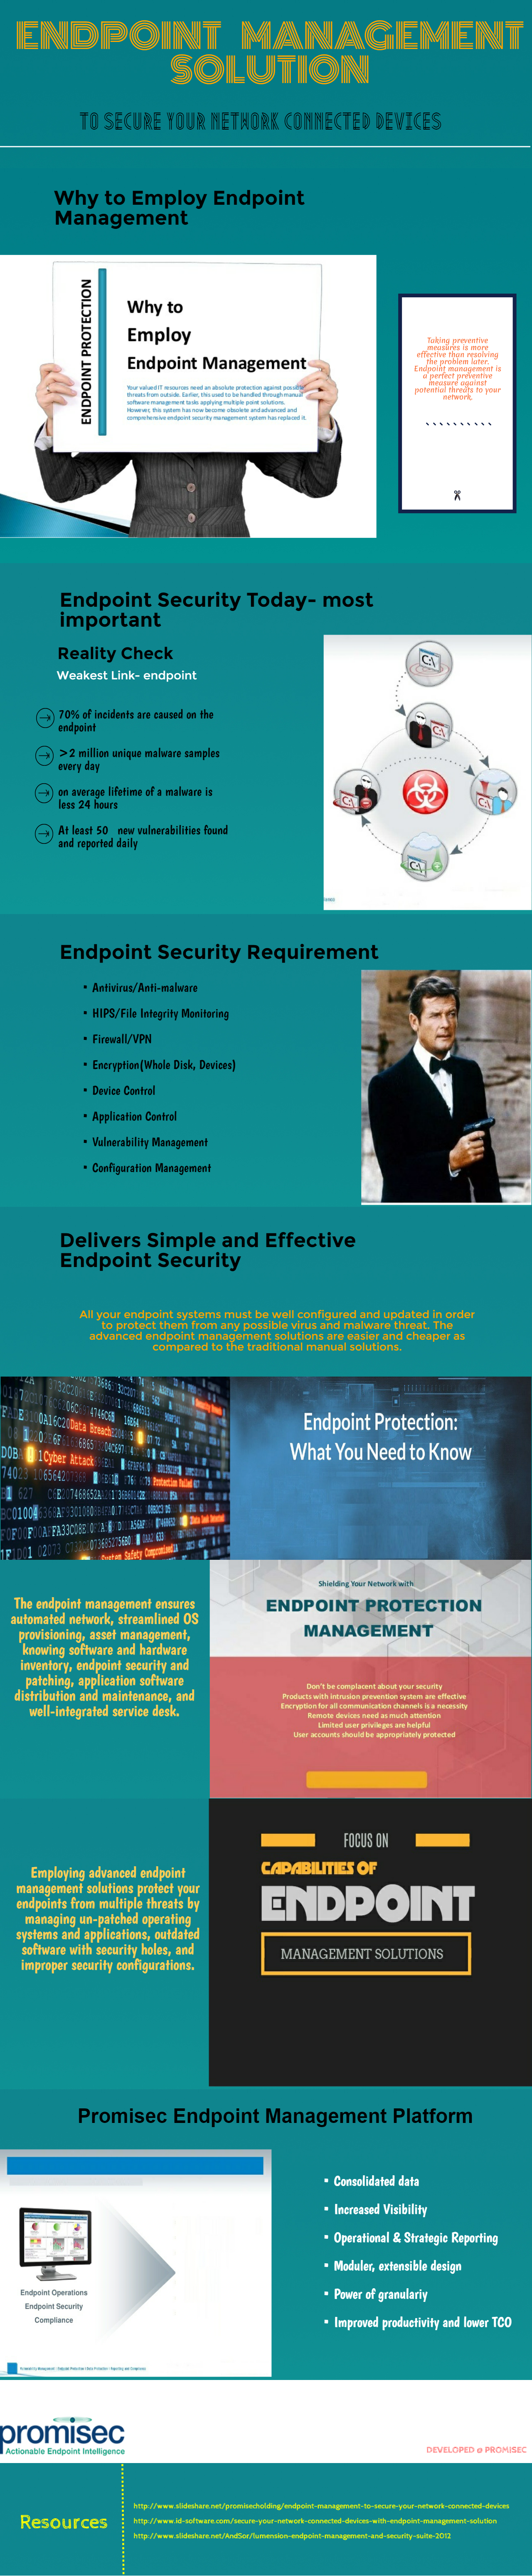 endpoint-management-to-secure-your-network-connected-devices